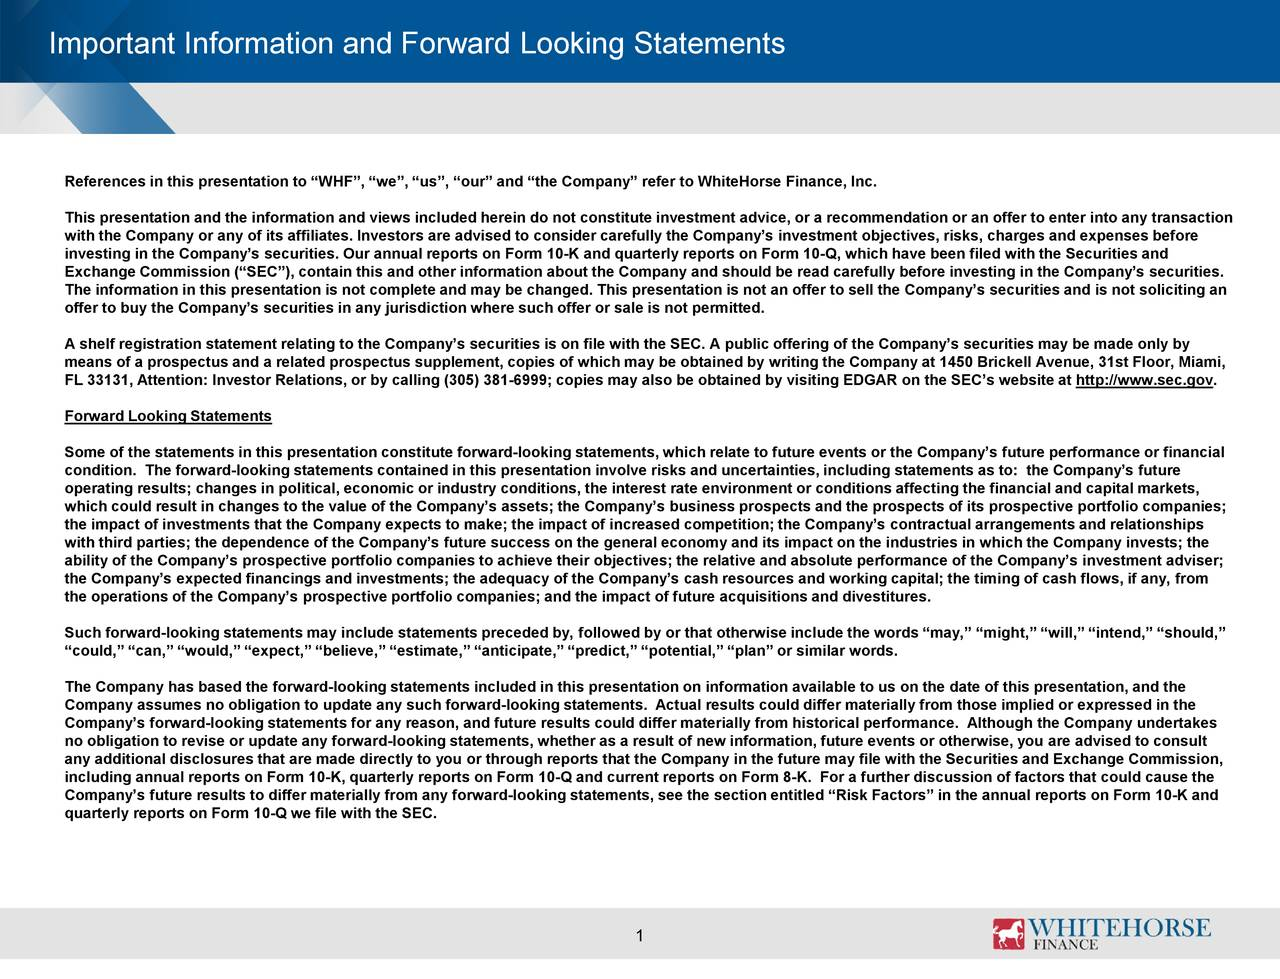 """References in this presentation to """"WHF"""", """"we"""", """"us"""", """"our"""" and """"the Company"""" refer to WhiteHorse Finance, Inc. This presentation and the information and views included herein do not constitute investment advice, or a recommendation or an offer to enter into any transaction with the Company or any of its affiliates. Investors are advised to consider carefully the Company's investment objectives, risks, charges and expenses before investing in the Company's securities. Our annual reports on Form 10-K and quarterly reports on Form 10-Q, which have been filed with the Securities and Exchange Commission (""""SEC""""), contain this and other information about the Company and should be read carefully before investing in the Company's securities. The information in this presentation is not complete and may be changed. This presentation is not an offer to sell the Company's securities and is not soliciting an offer to buy the Company's securities in any jurisdiction where such offer or sale is not permitted. A shelf registration statement relating to the Company's securities is on file with the SEC. A public offering of the Company's securities may be made only by means of a prospectus and a related prospectus supplement, copies of which may be obtained by writing the Company at 1450 Brickell Avenue, 31st Floor, Miami, FL 33131, Attention: Investor Relations, or by calling (305) 381-6999; copies may also be obtained by visiting EDGAR on the SEC's website at http://www.sec.gov. Forward Looking Statements Some of the statements in this presentation constitute forward-looking statements, which relate to future events or the Company's future performance or financial condition. The forward-looking statements contained in this presentation involve risks and uncertainties, including statements as to: the Company's future operating results; changes in political, economic or industry conditions, the interest rate environment or conditions affecting the financial and capital markets, which"""